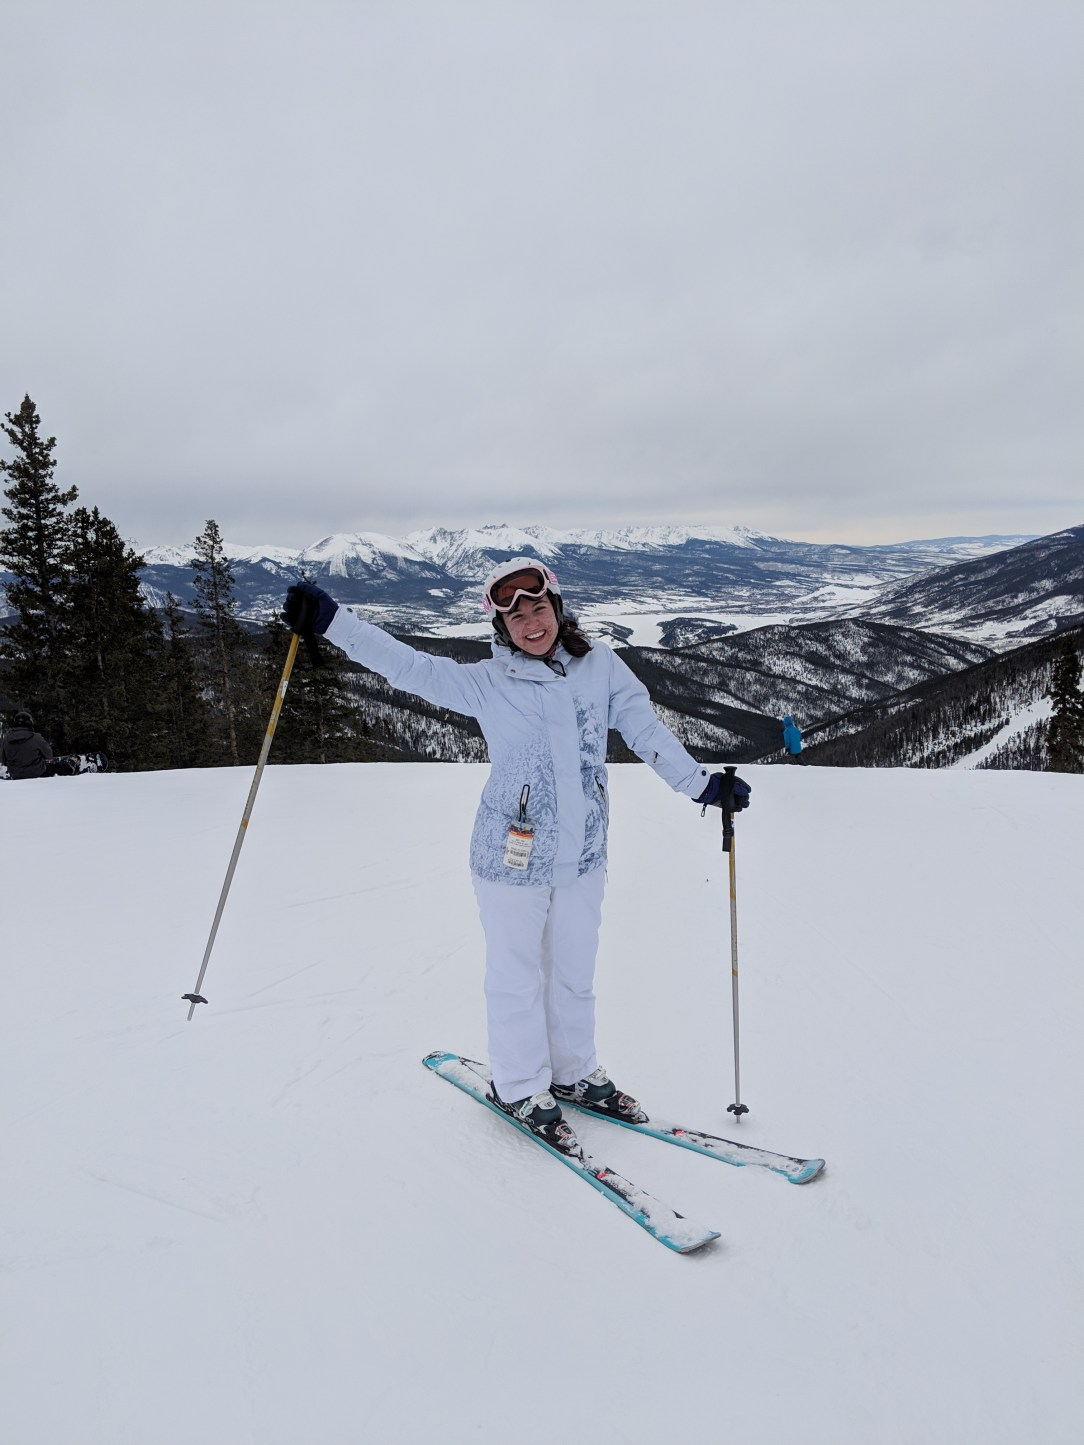 skiing, Keystone resort, winter carnival, snow sports